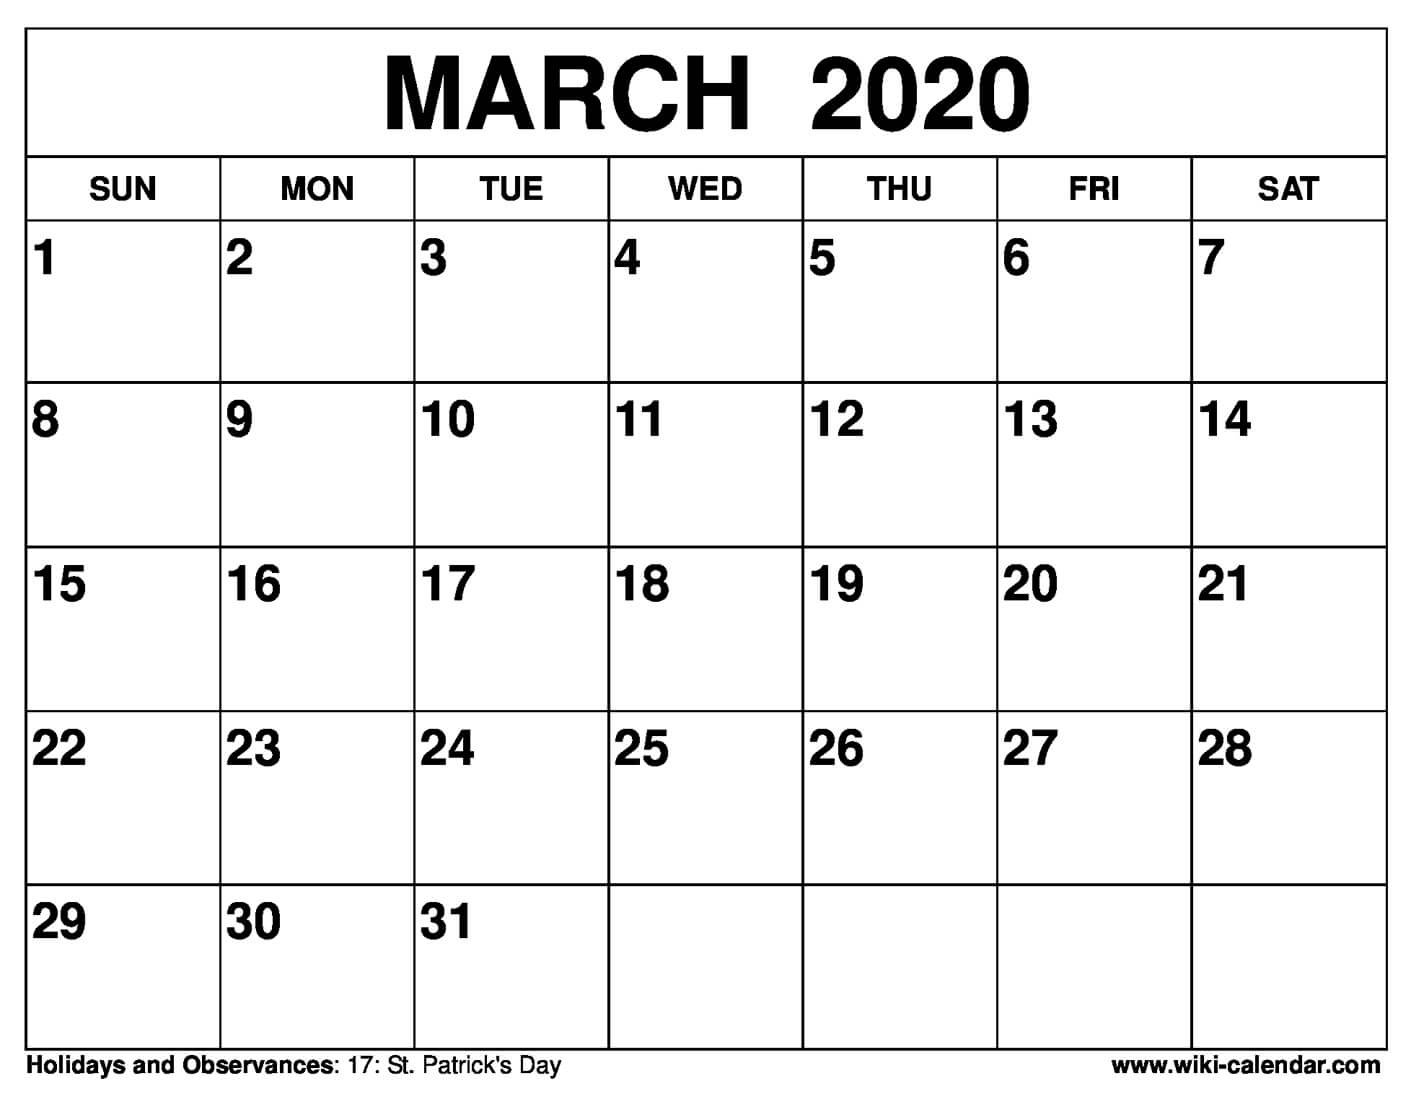 Free Printable March 2020 Calendars Printable Calenders With Date And Time On 8 1/2 X 11 Paper